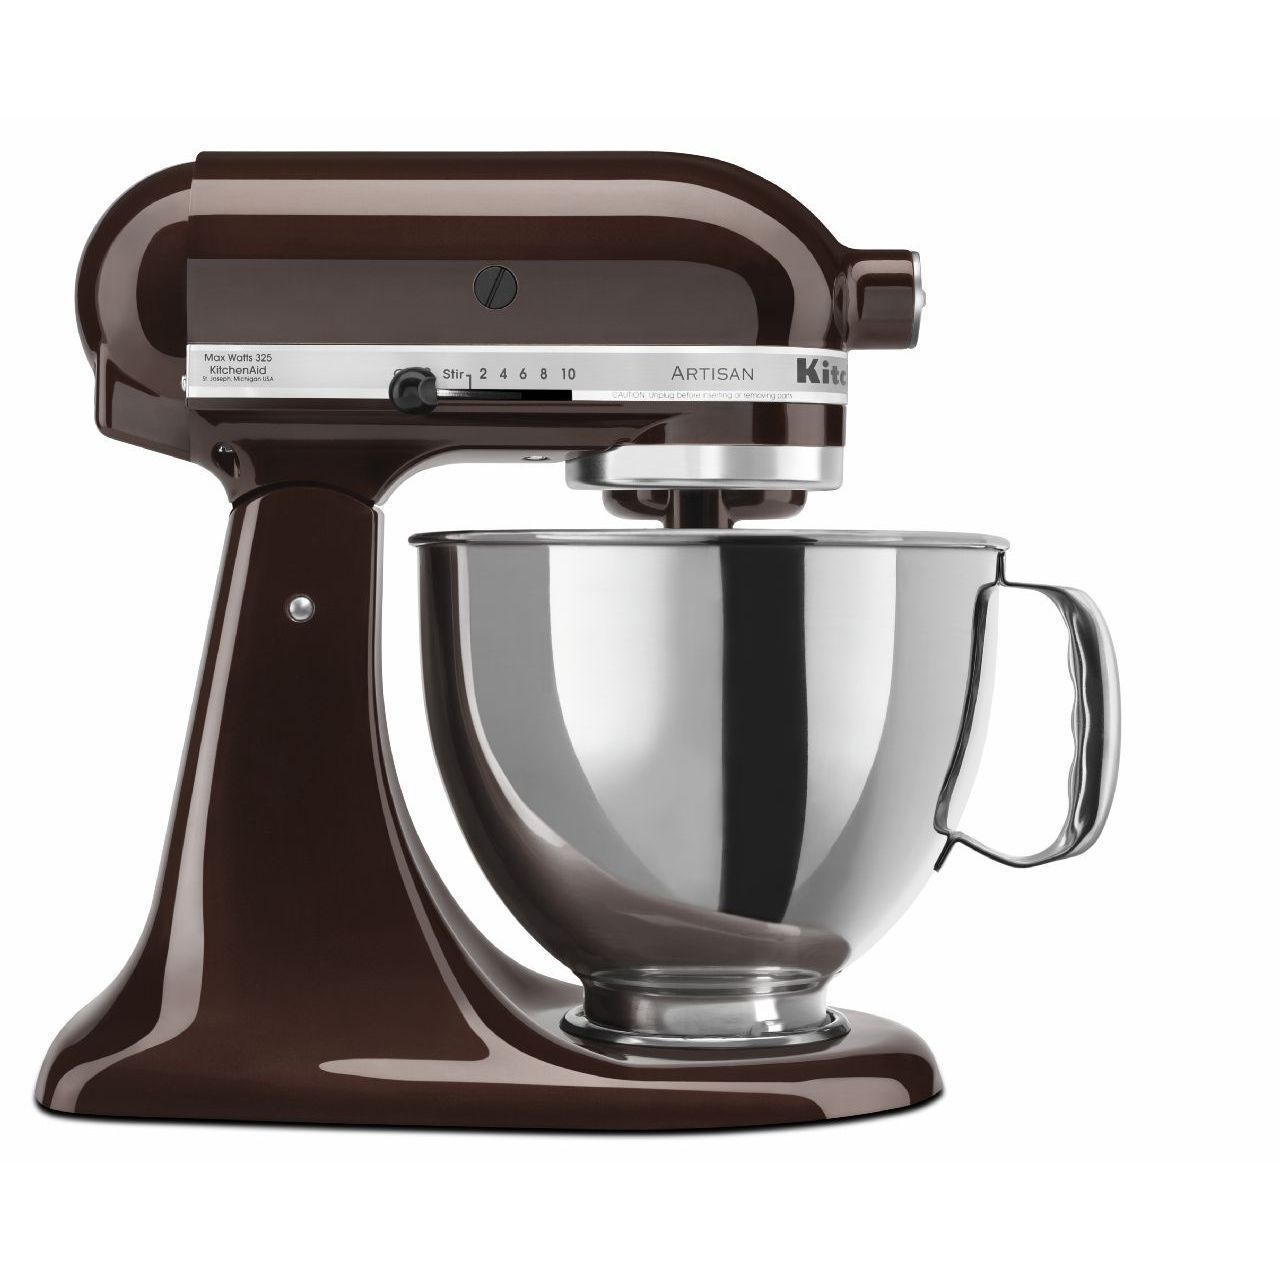 Kitchenaid Ksm150pses Espresso Brown 5 Quart Artisantilt Head